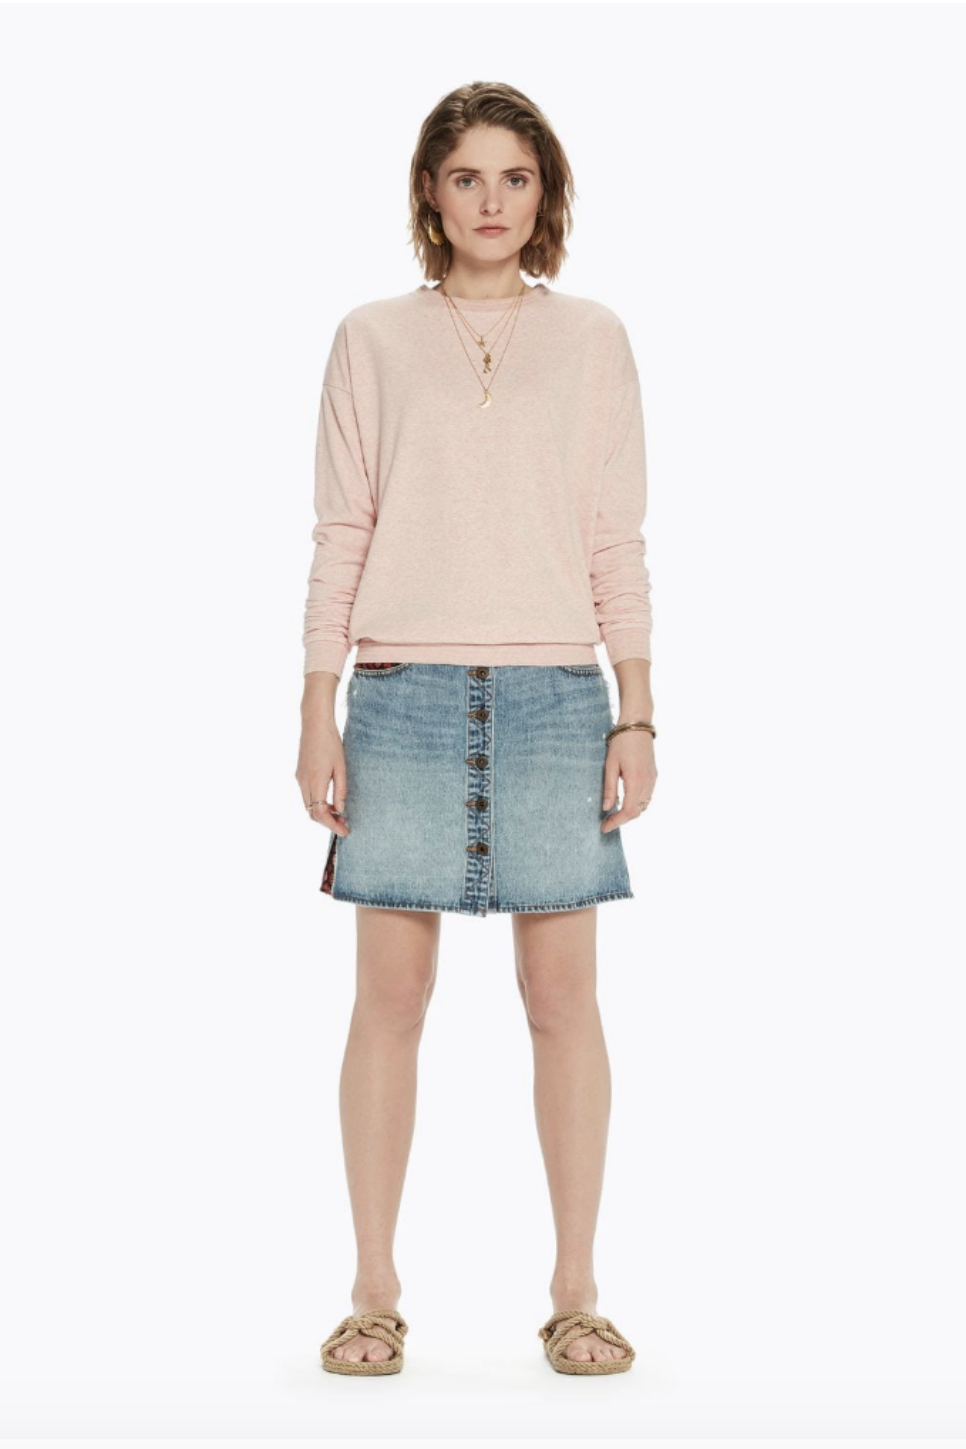 Scotch and Soda - Basic Light Sweater - Light Pink - Front